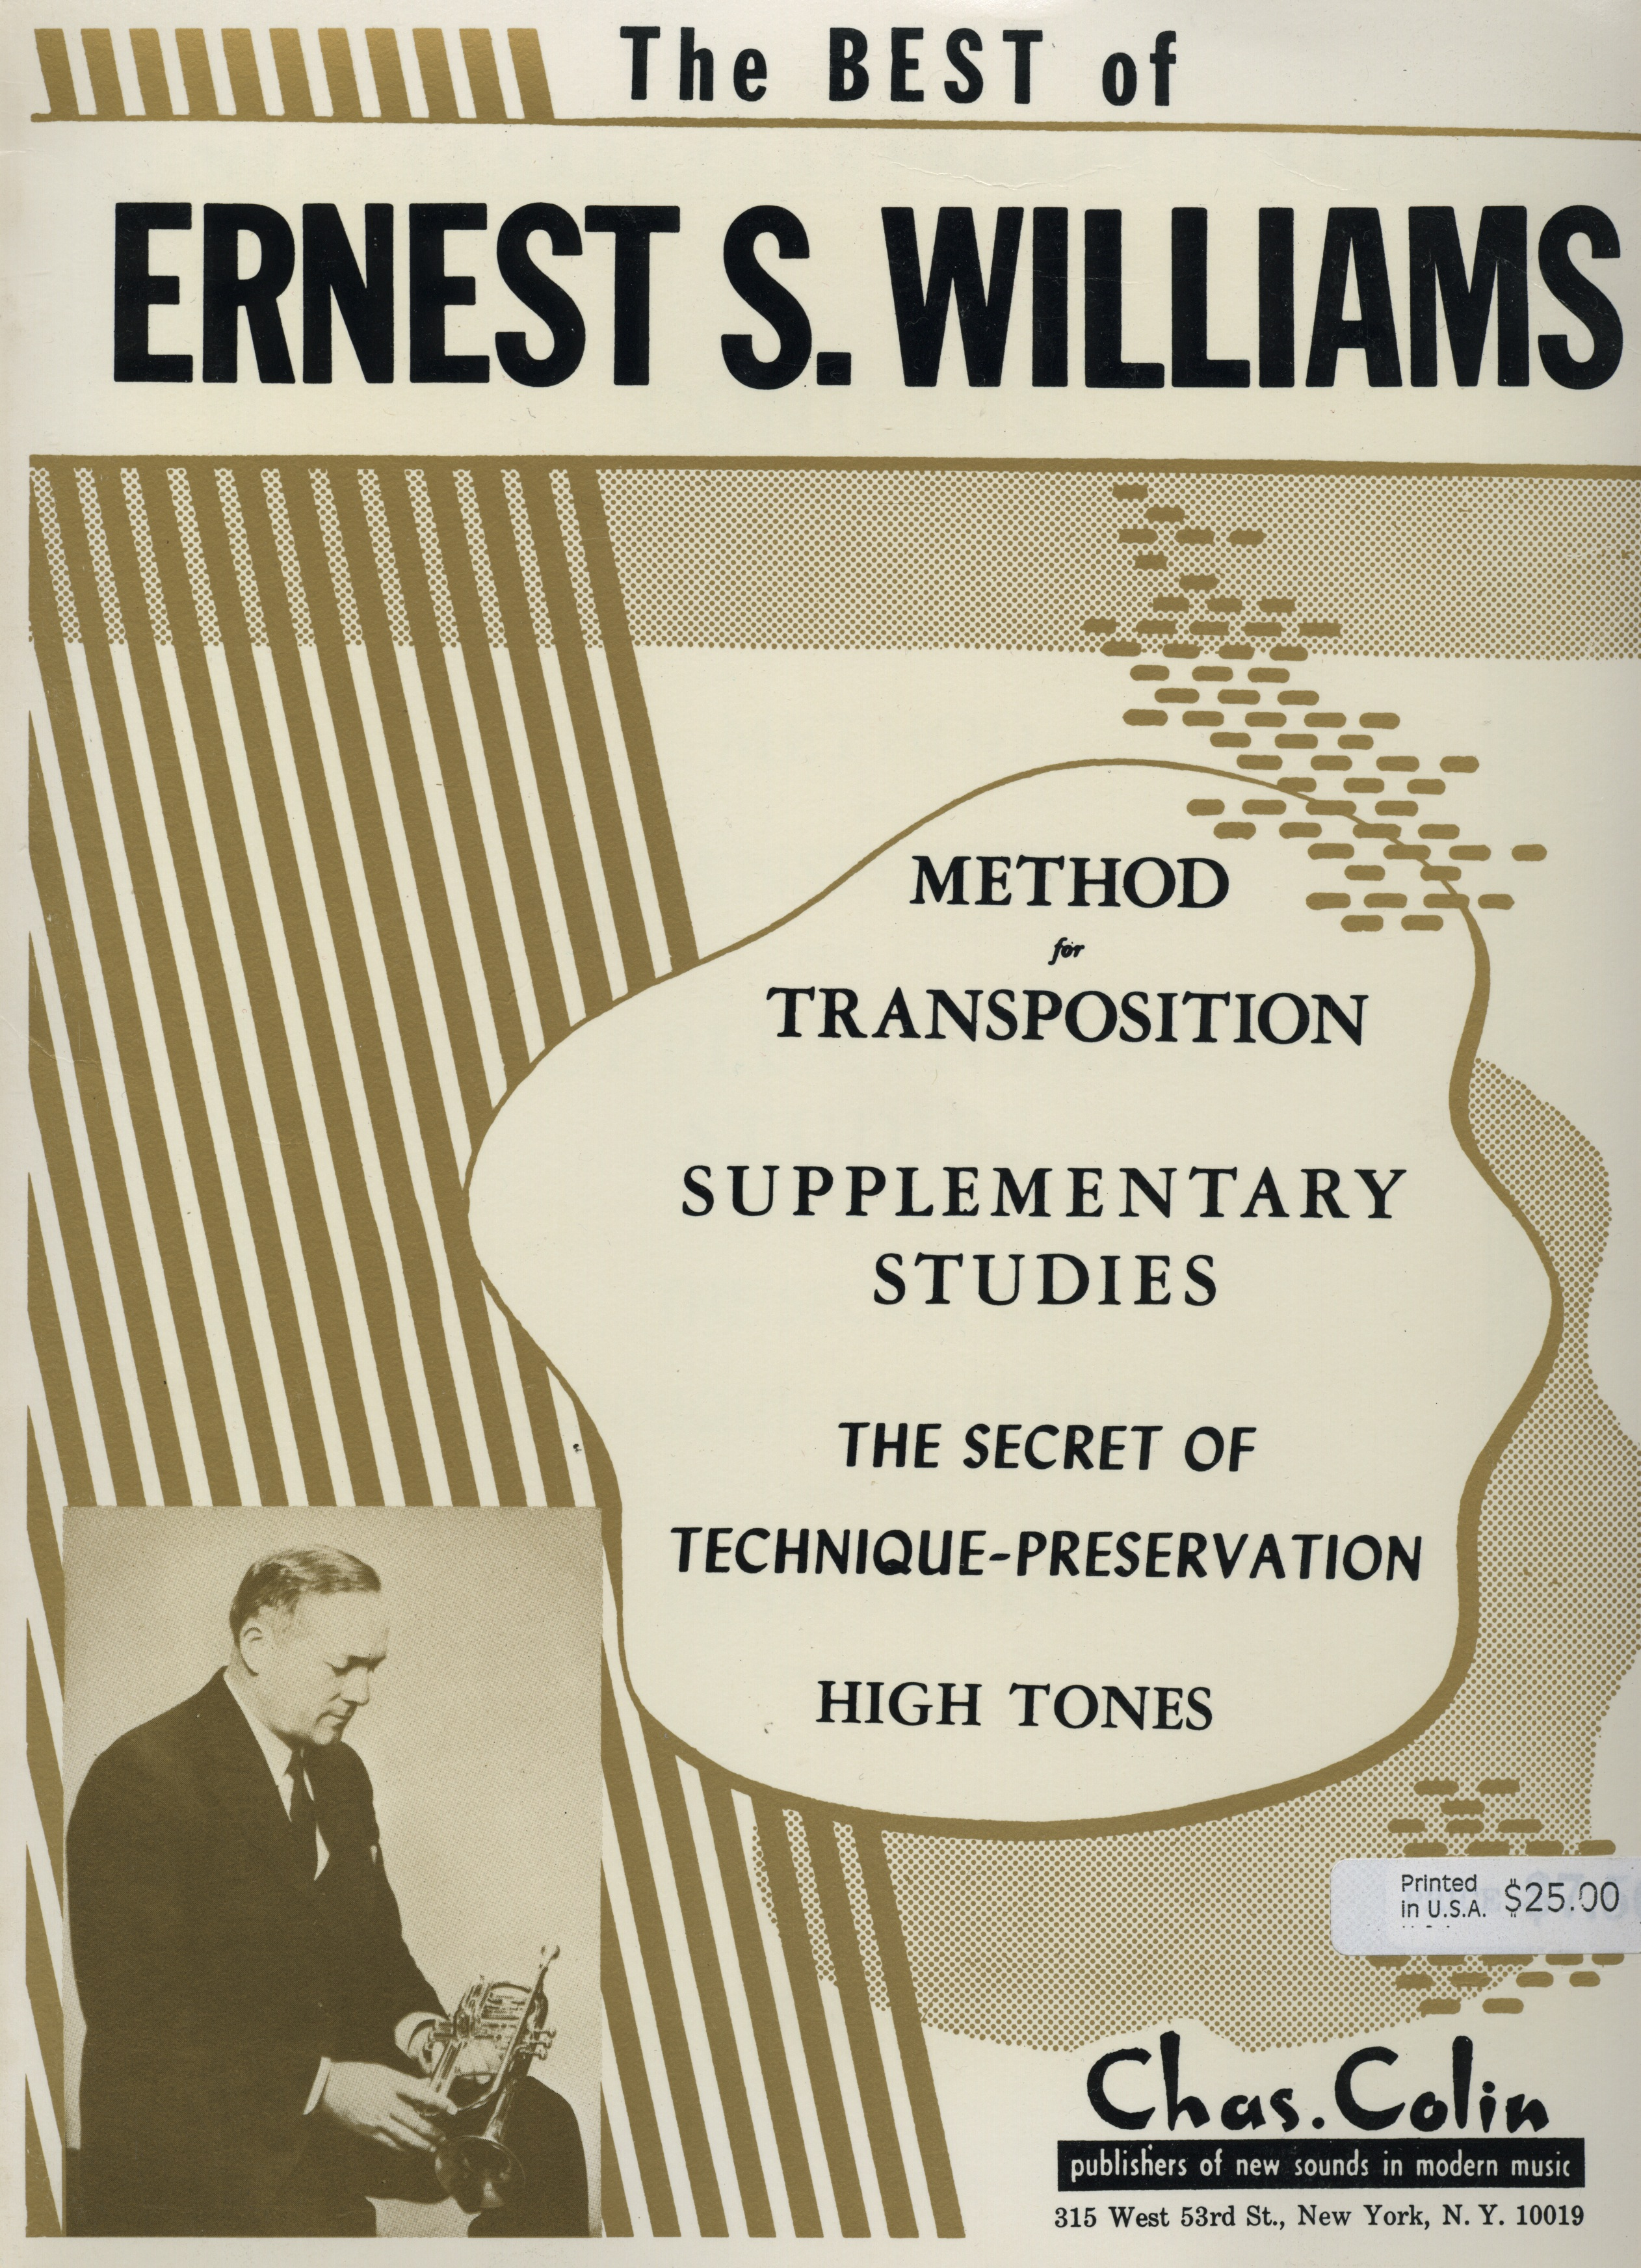 The Best of Ernest S. Williams